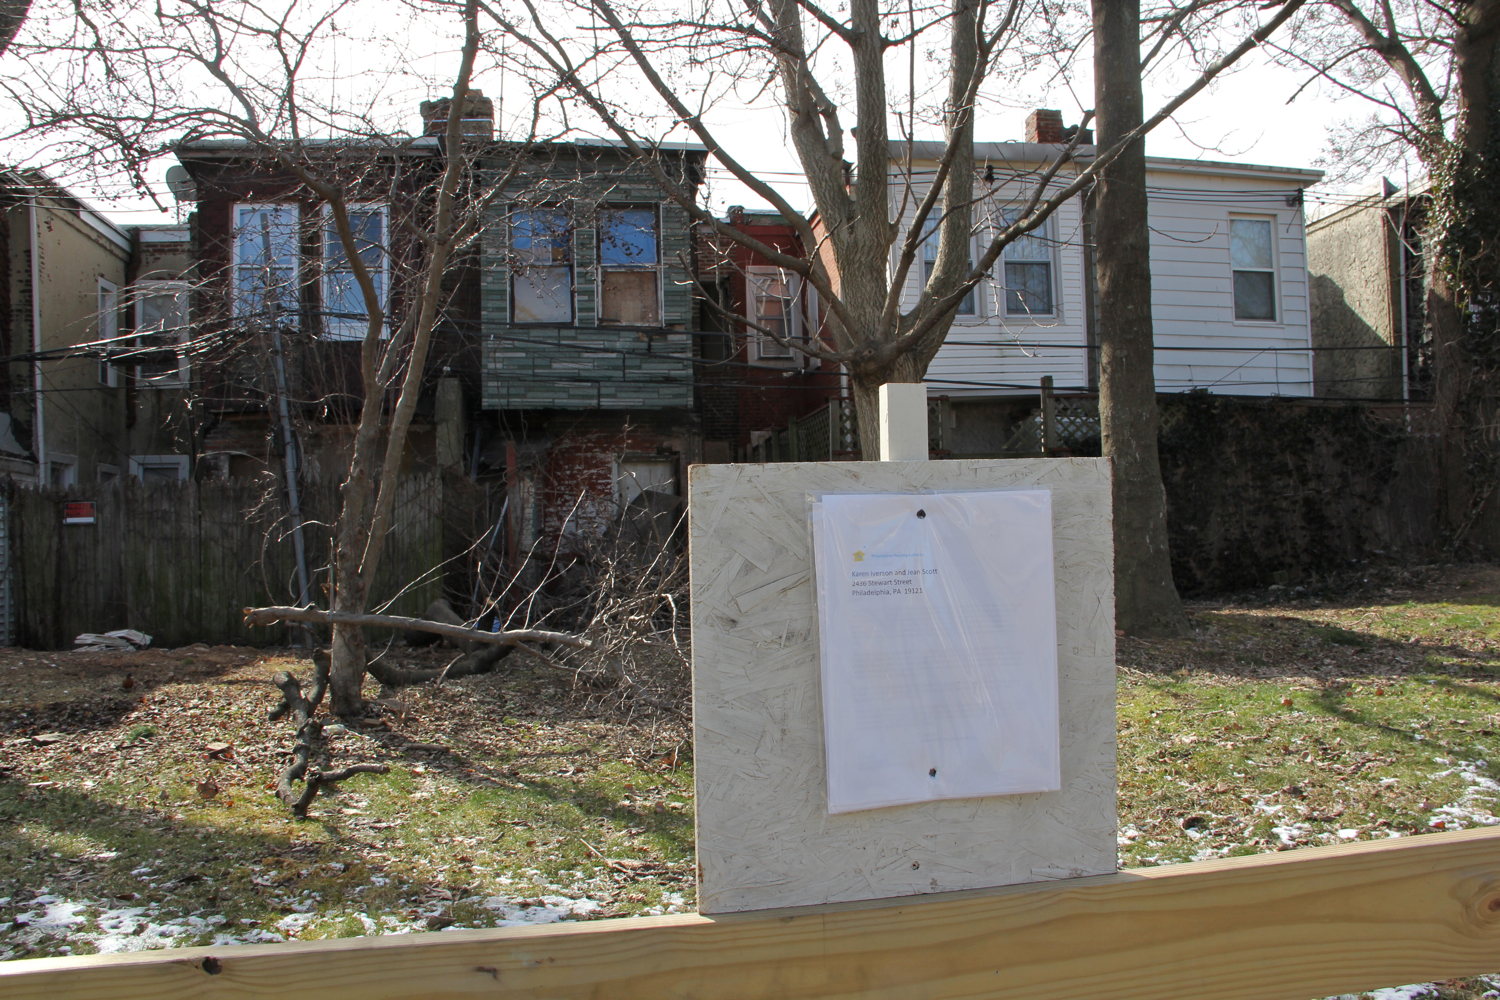 Vacant property condemnation by eminent domain, Sharswood, February, 2016 | Emma Lee/WHYY